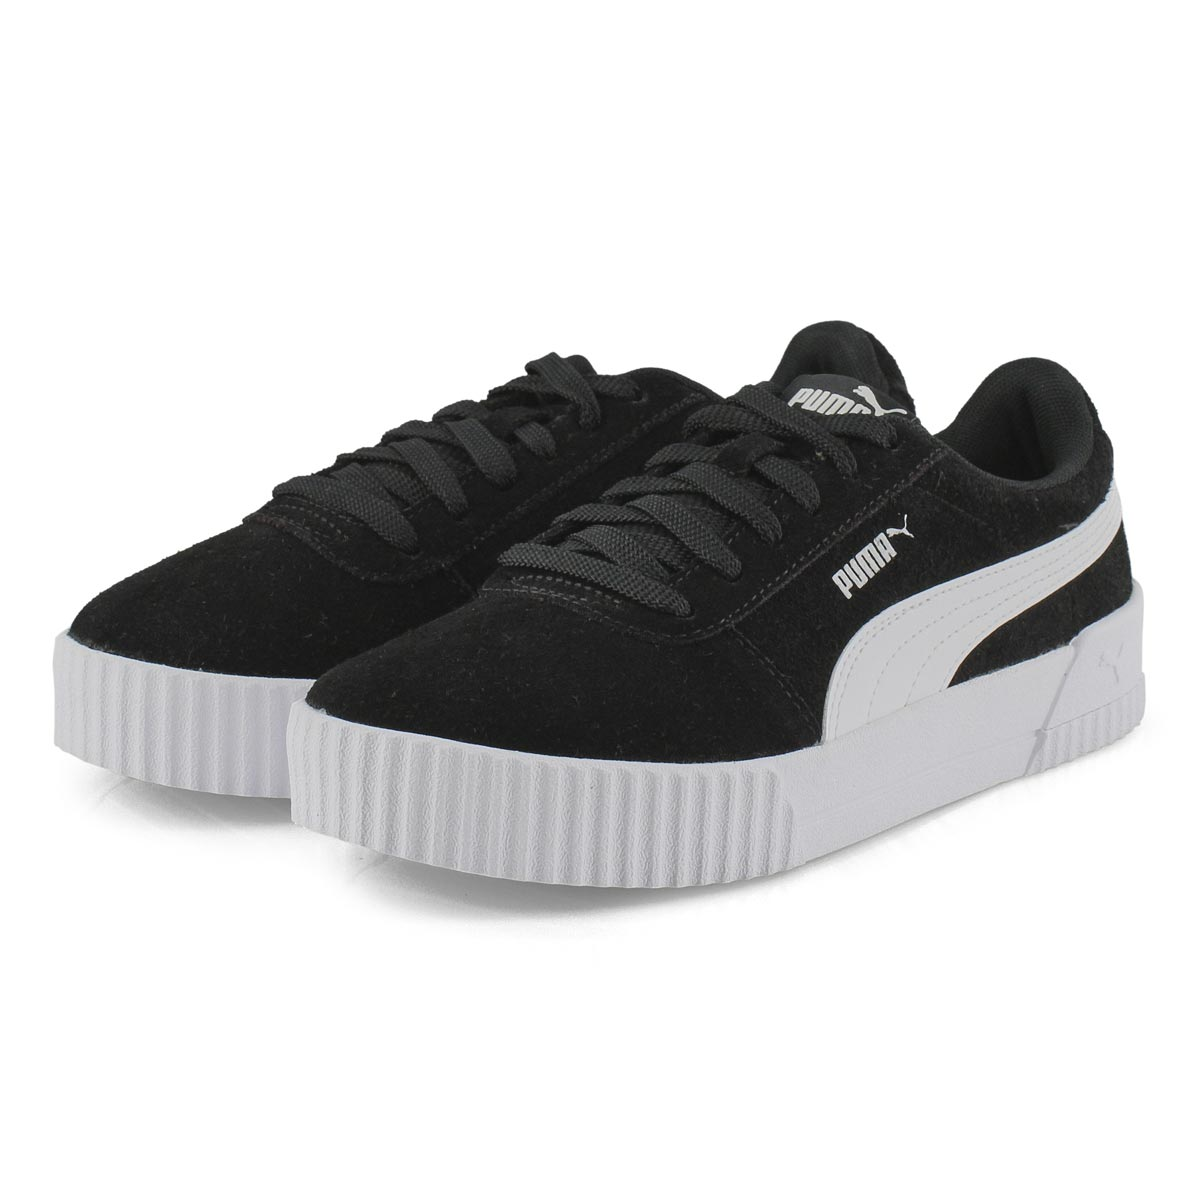 Lds Carina blk/wht lace up sneaker